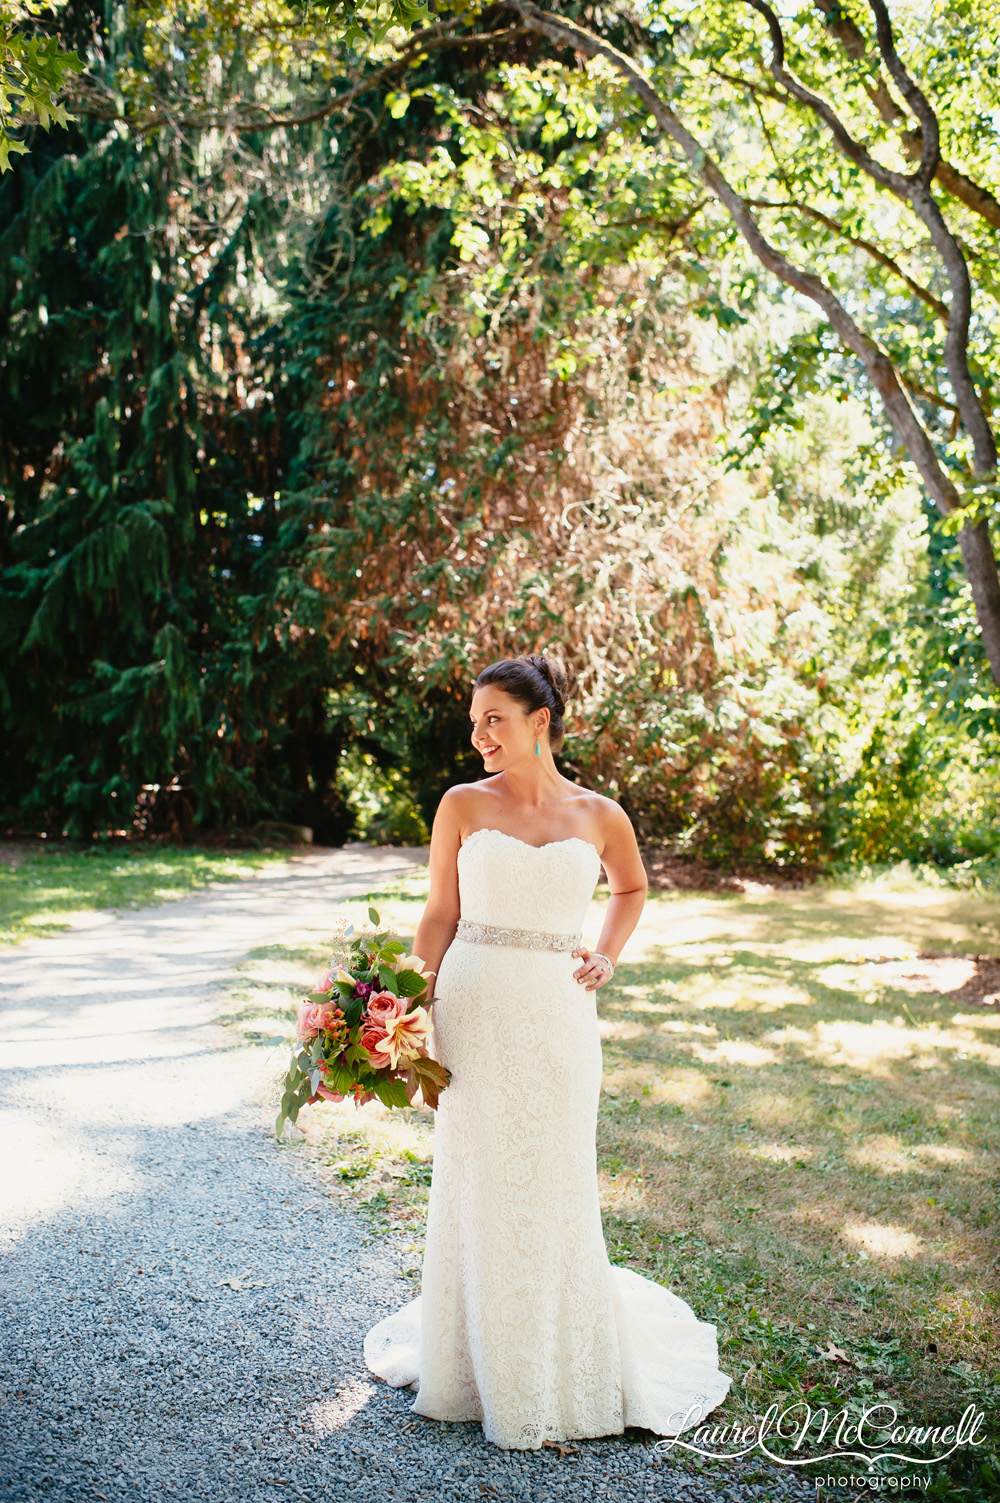 Romantic, wooded Seattle bridal portrait in Amy Kuschel gown by Laurel McConnell Photography.